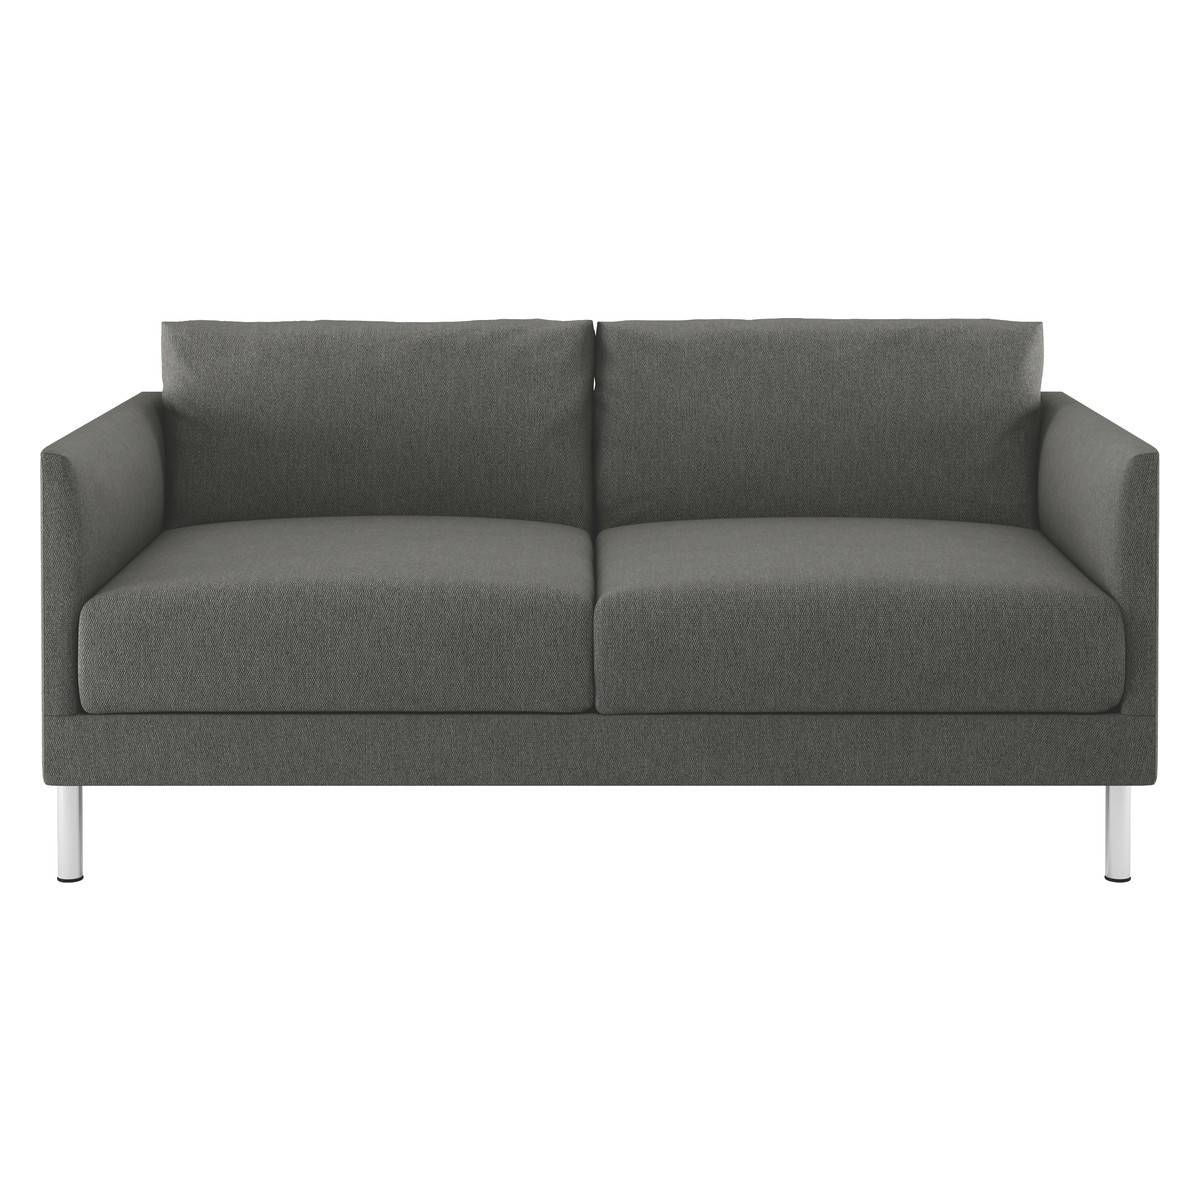 Hyde Charcoal Fabric 2 Seater Sofa, Metal Legs | Buy Now At Habitat Uk intended for 2 Seater Sofas (Image 12 of 30)